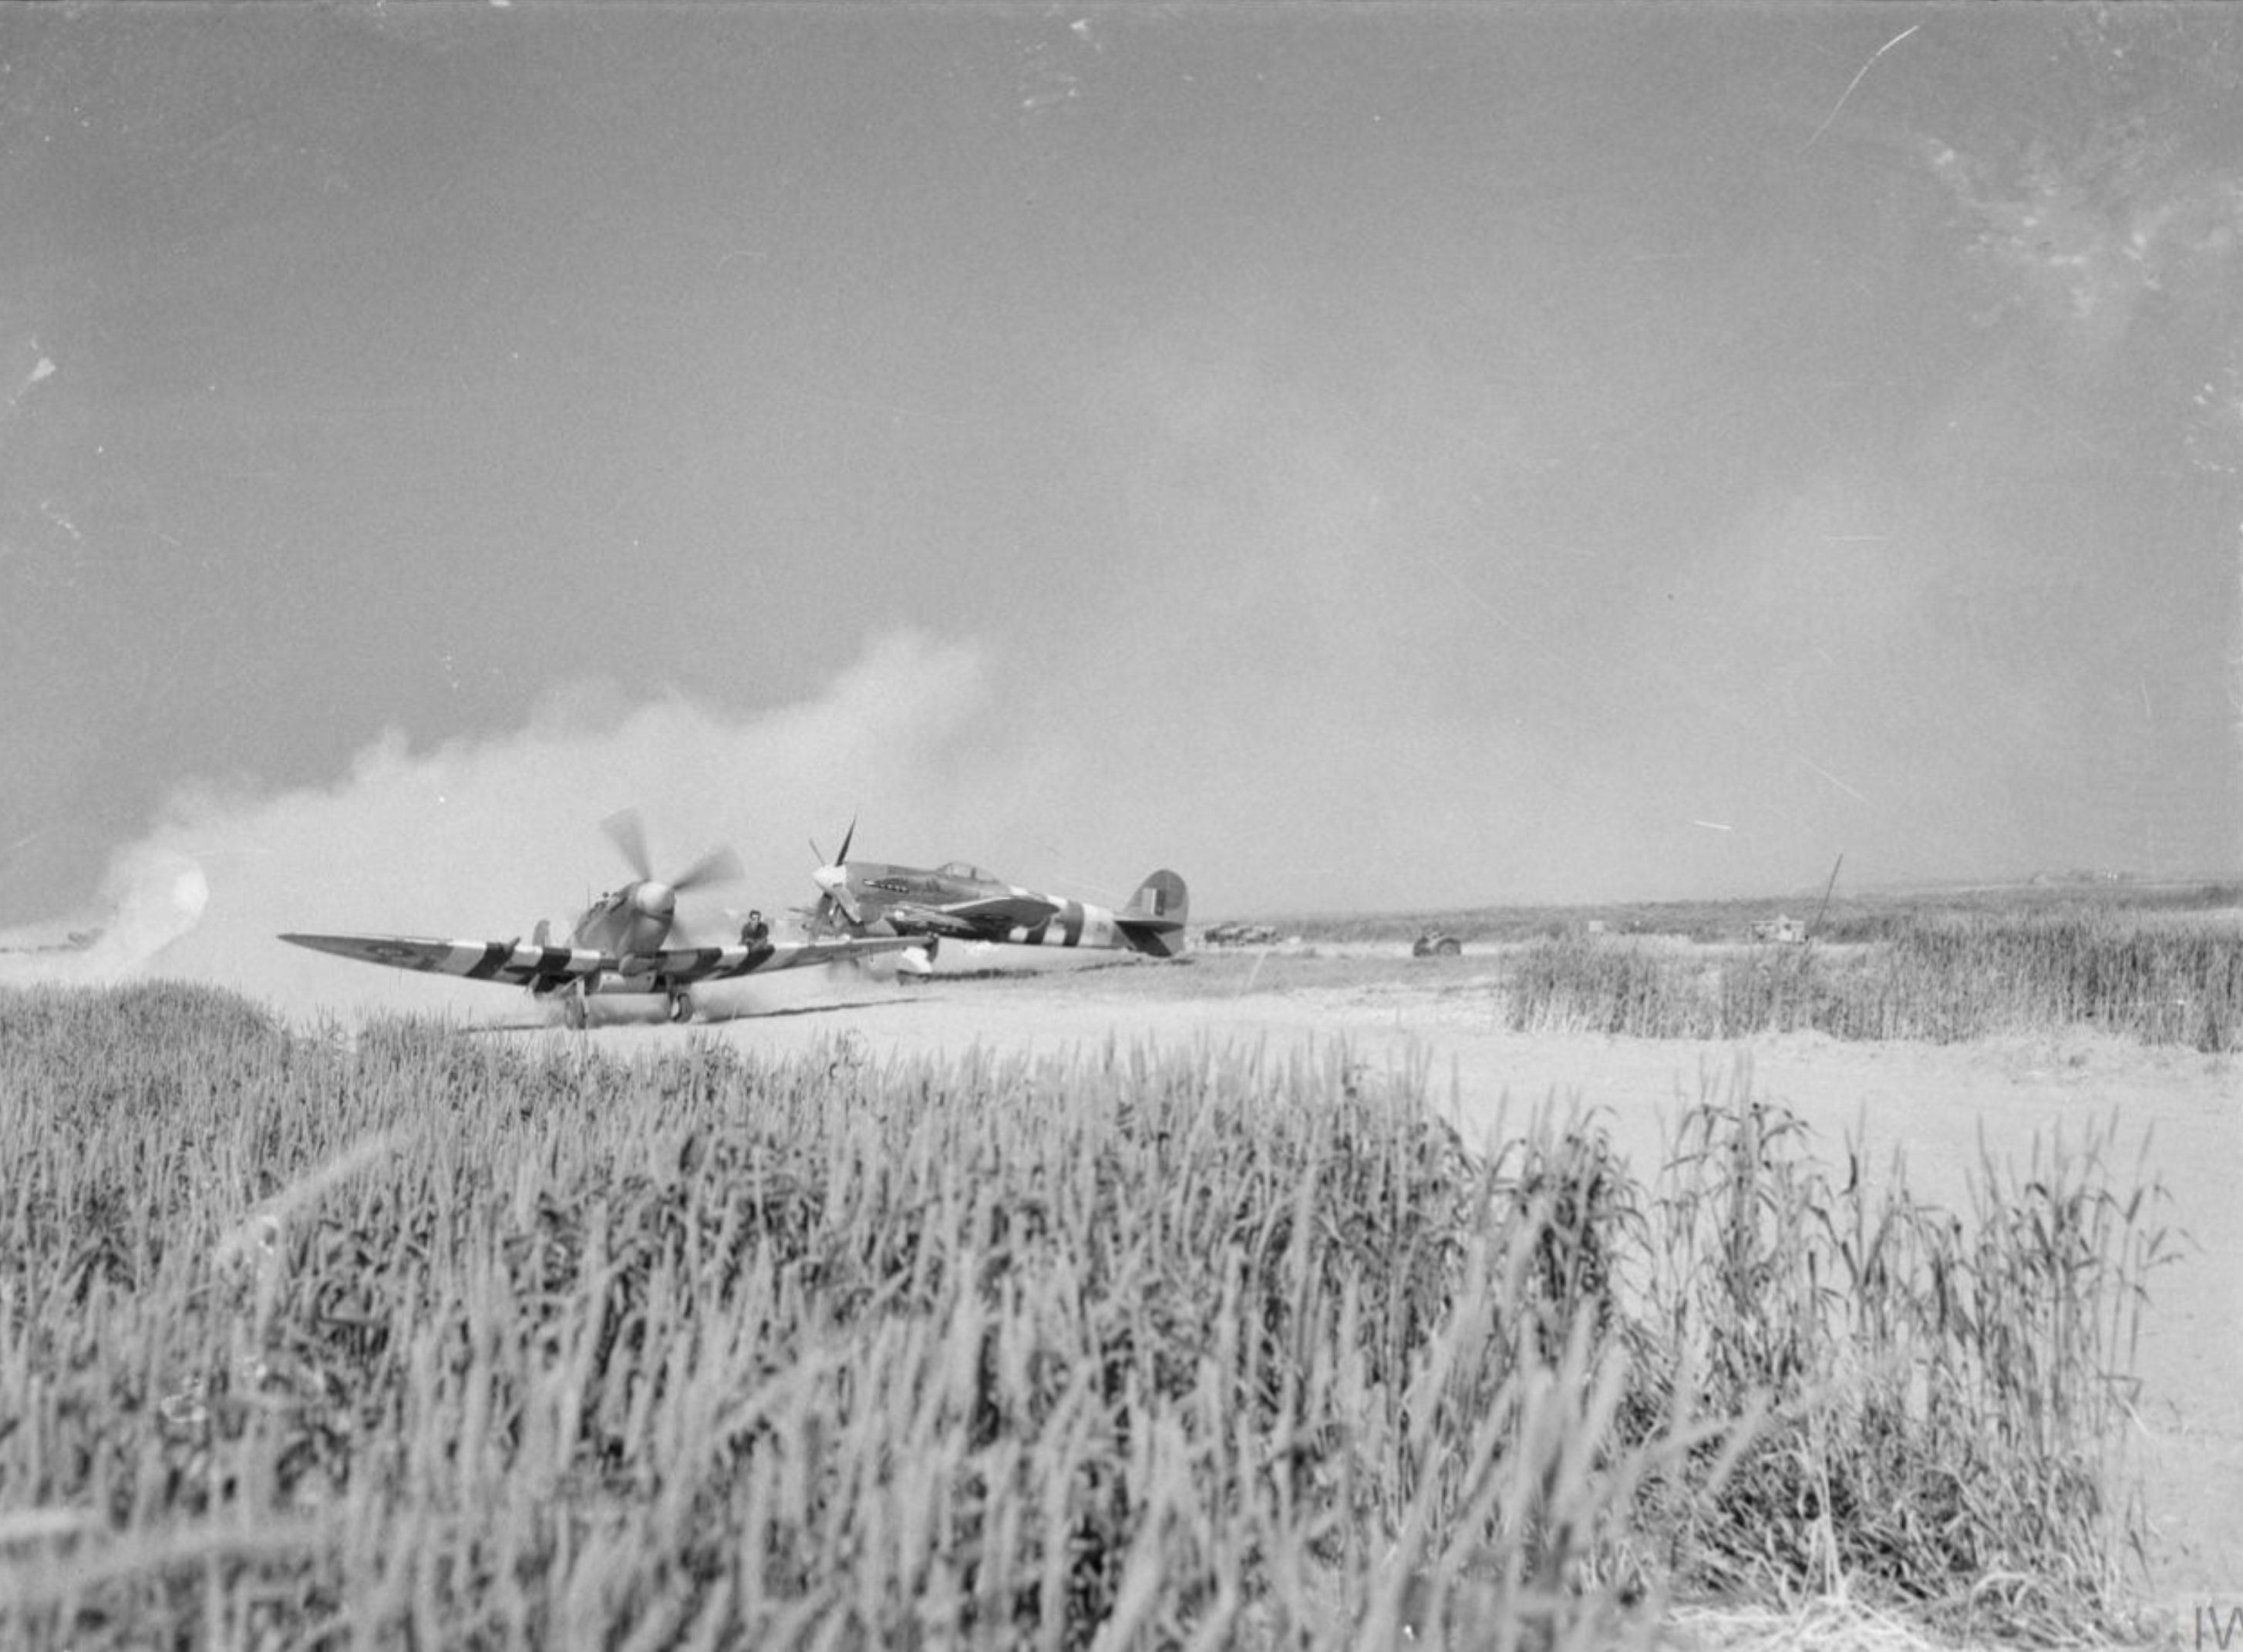 Spitfire MkIX taxing at B2 Bazenville Normandy 1944 IWM CL182